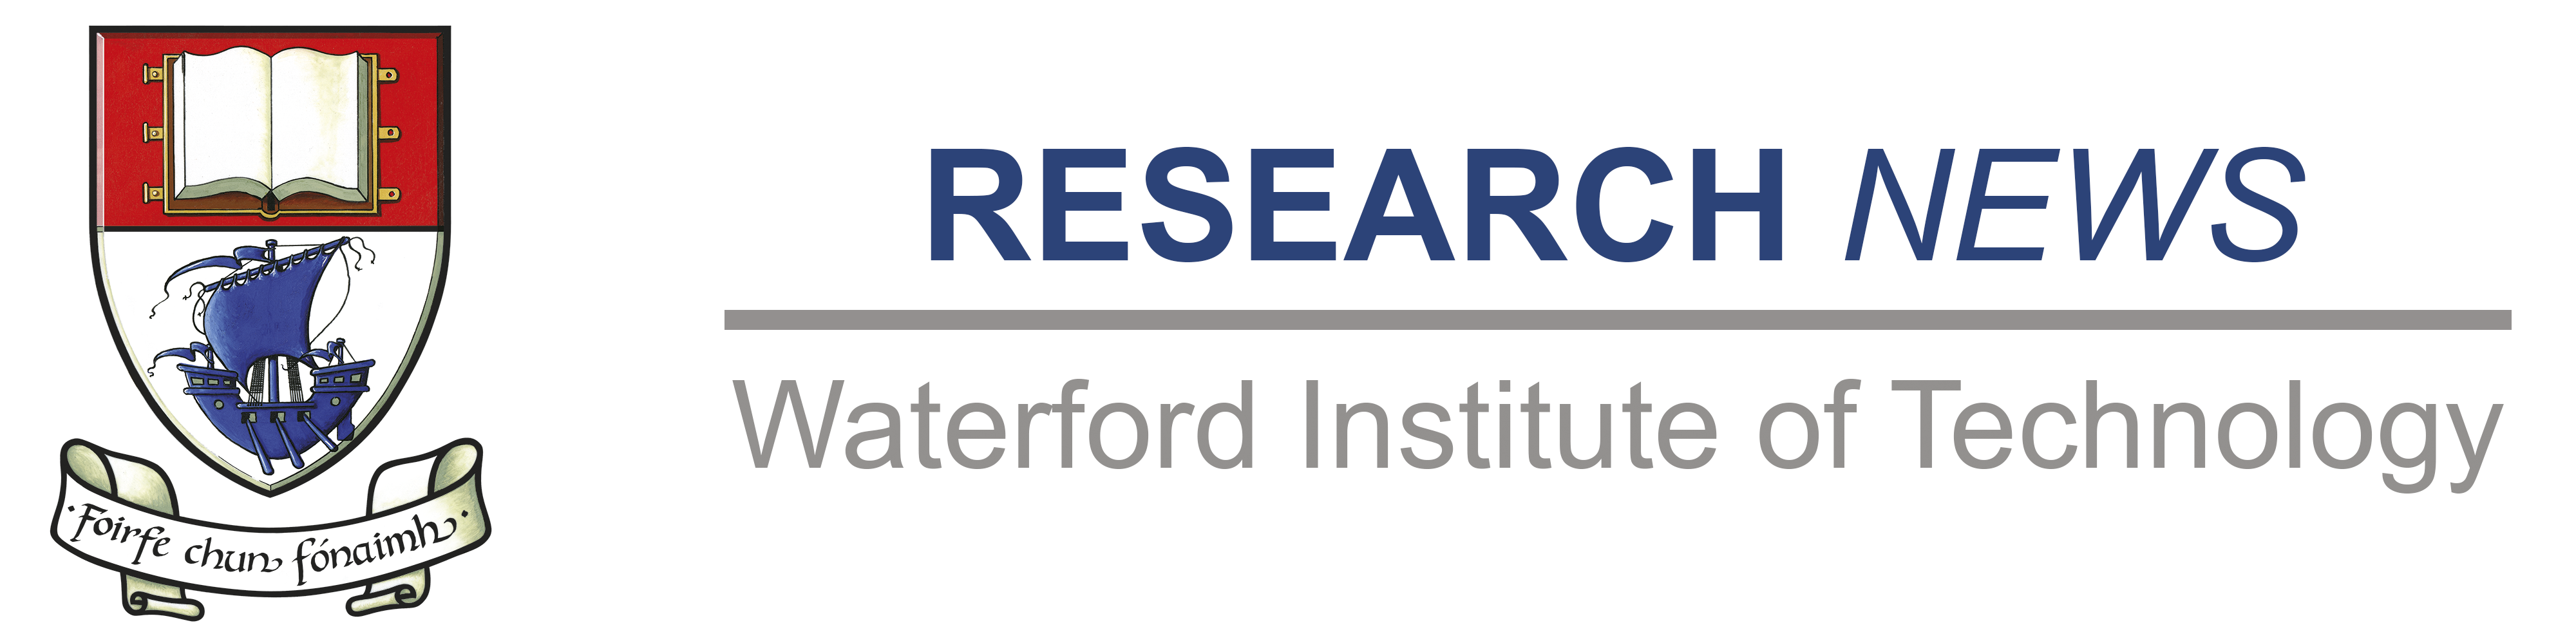 Research News Newsletter